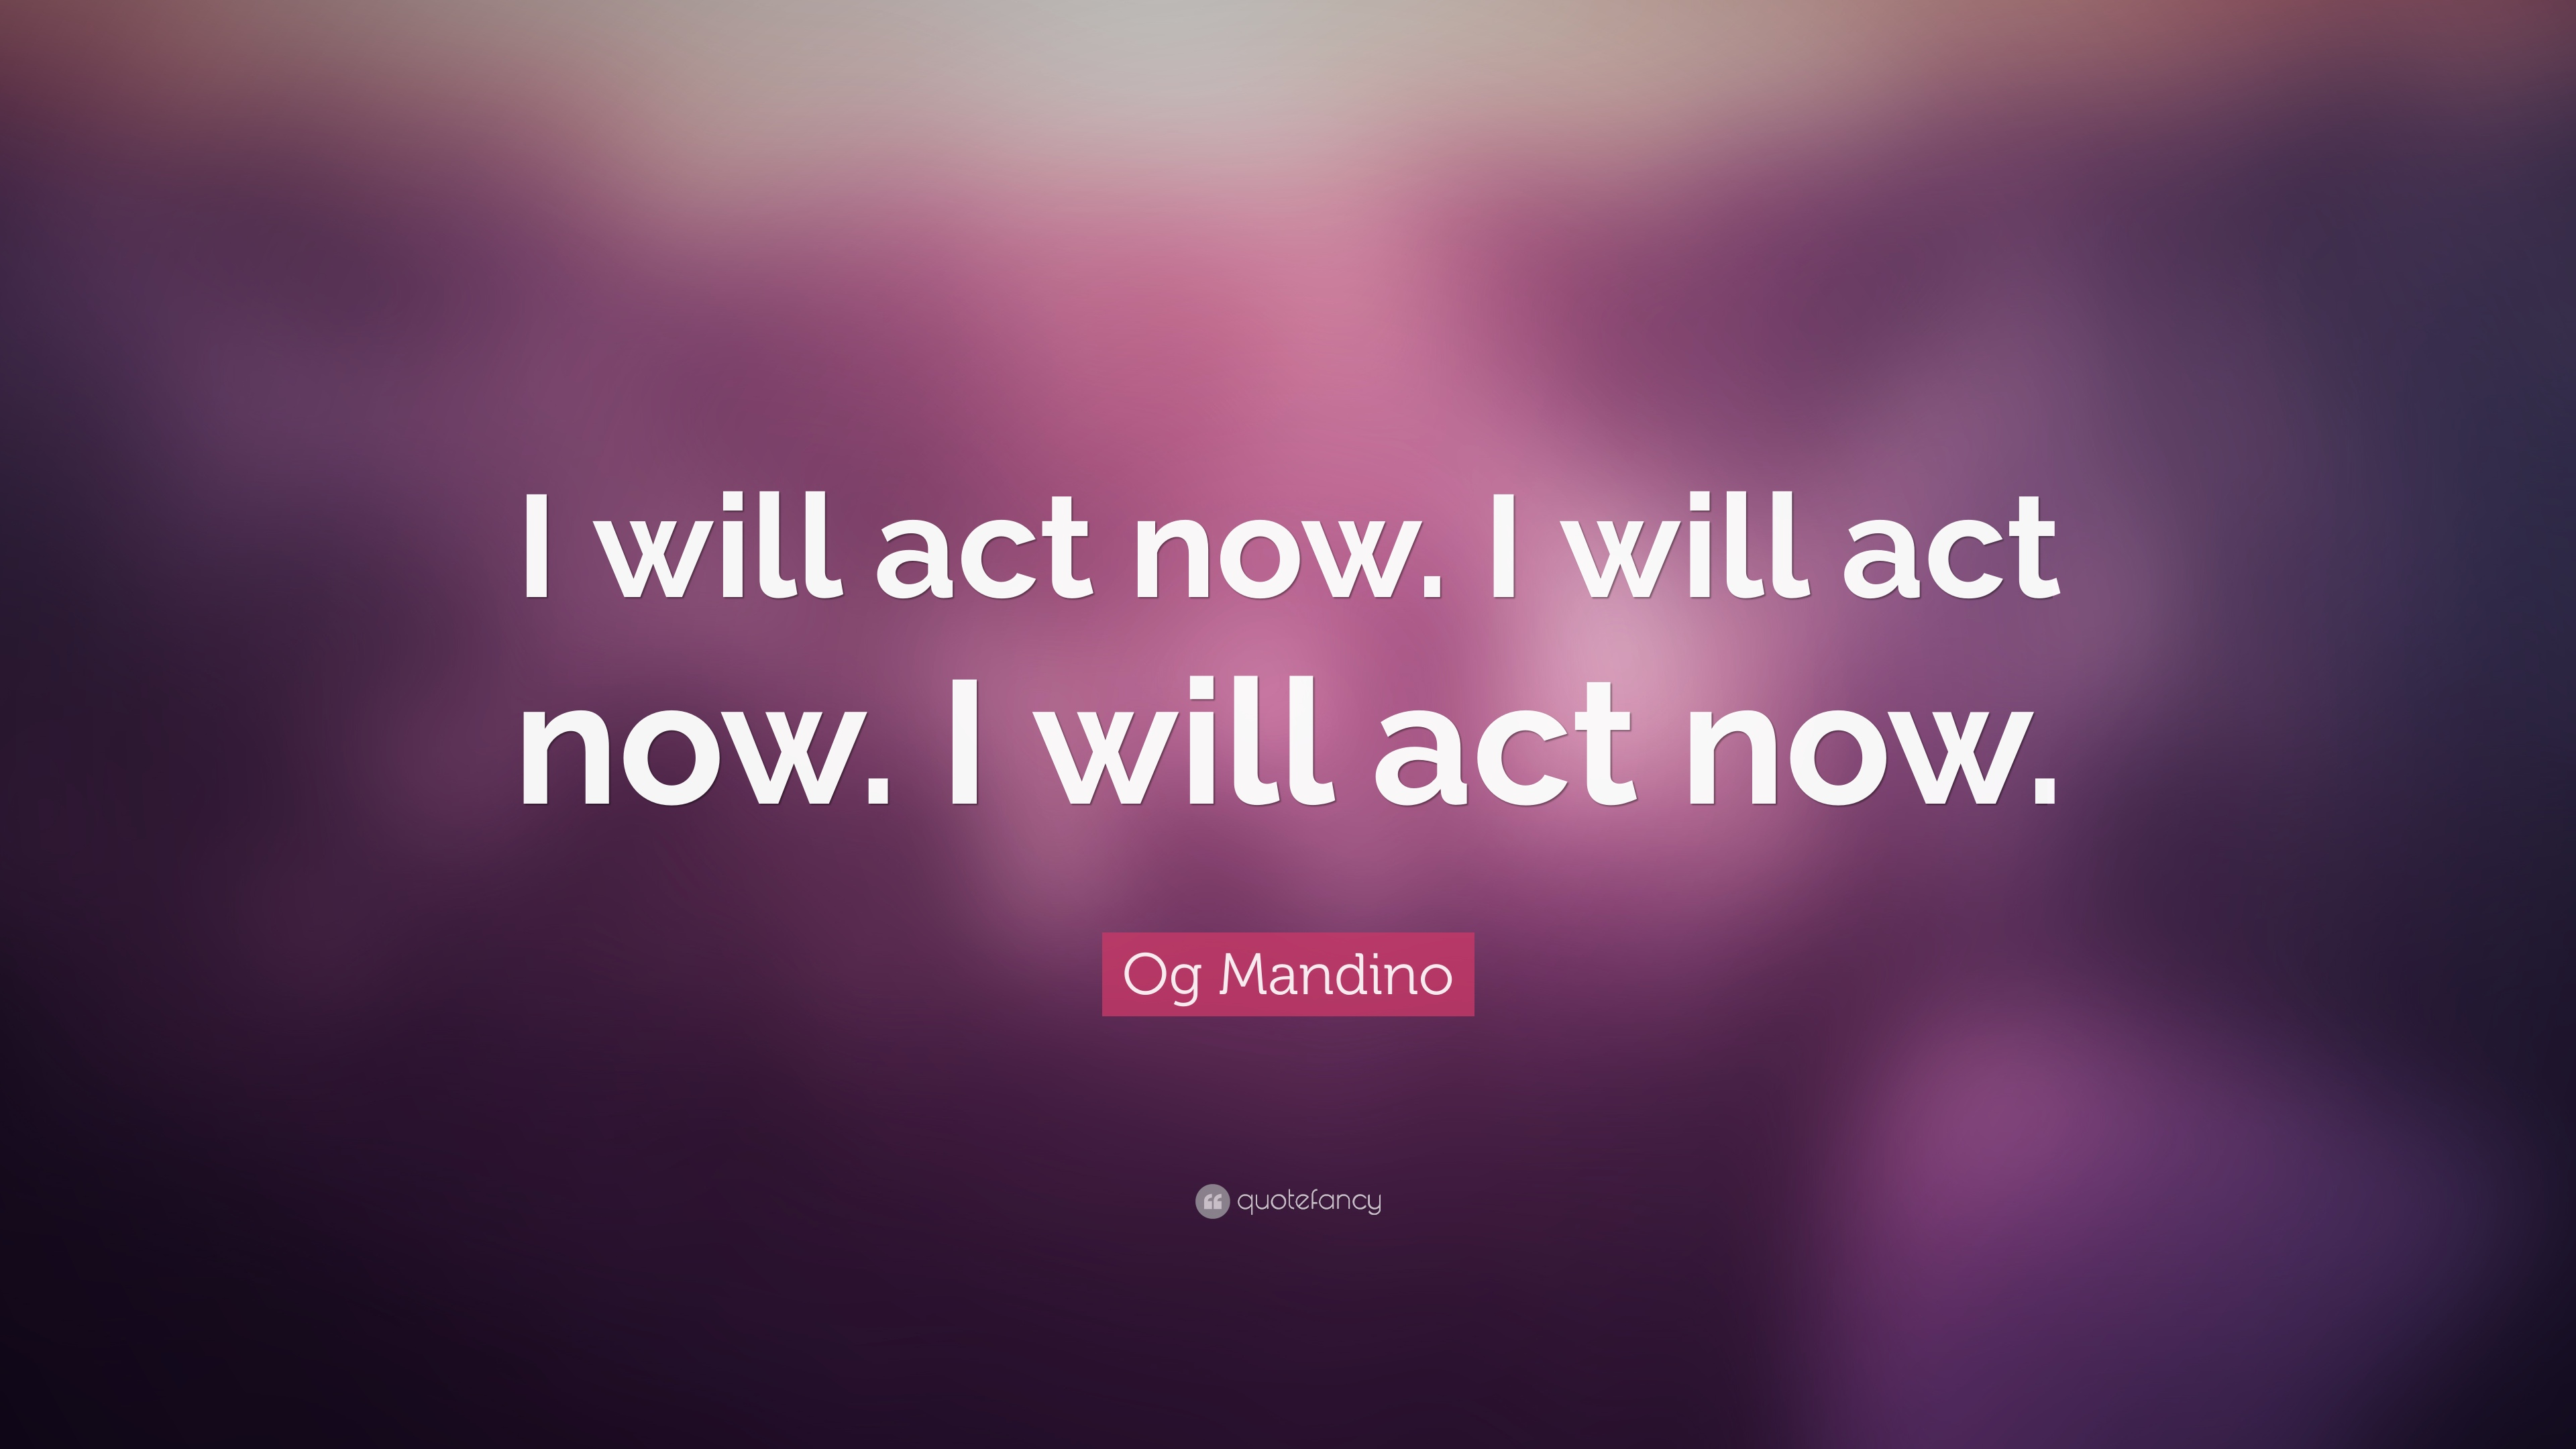 og mandino quote i will act now i will act now i will act now